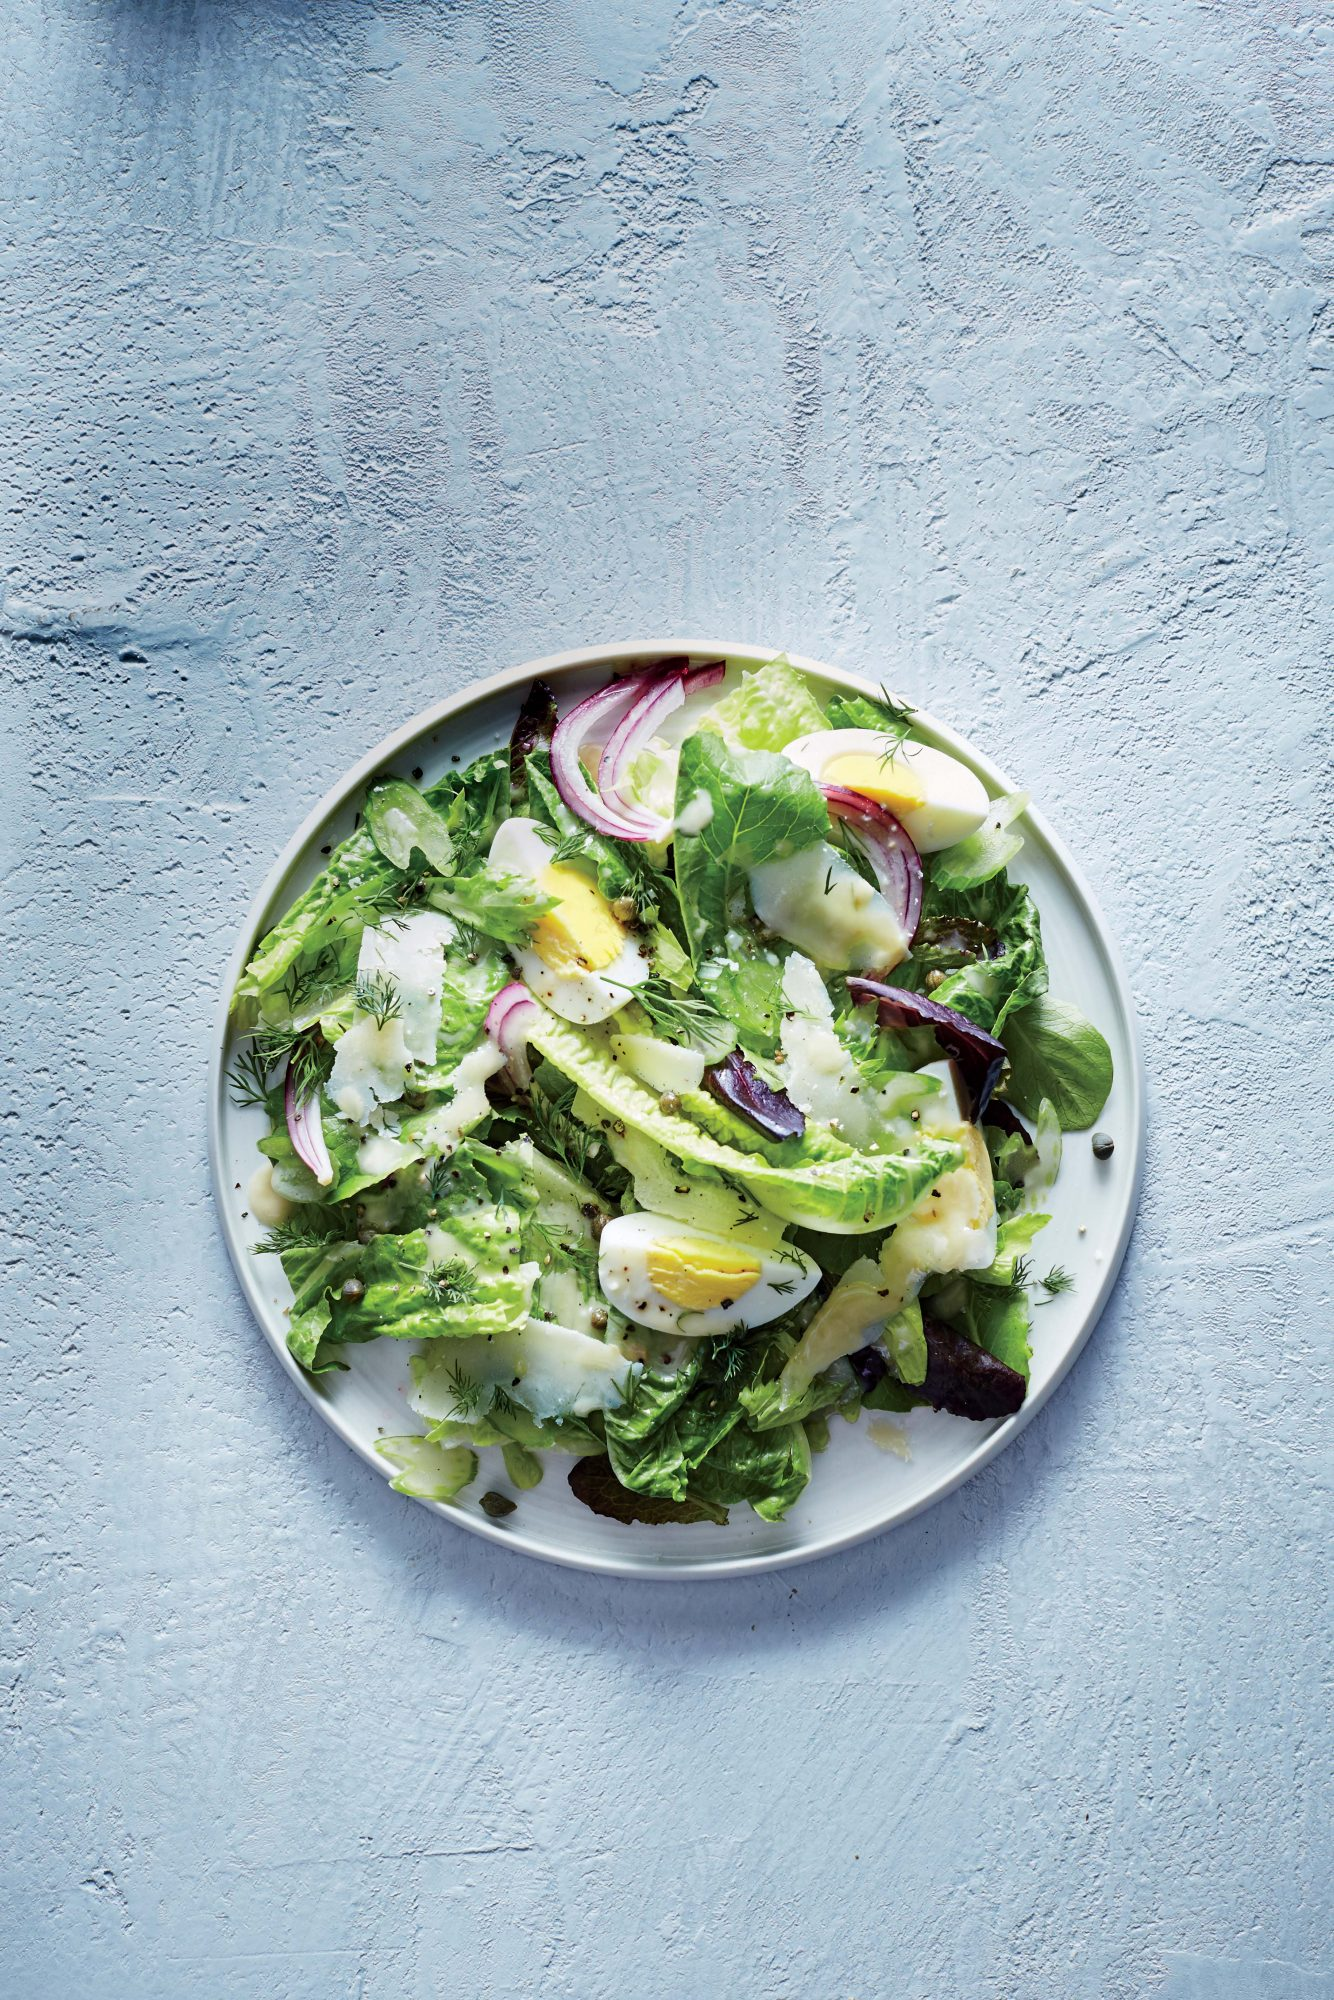 ck- Romaine, Celery, and Parmesan Salad Image